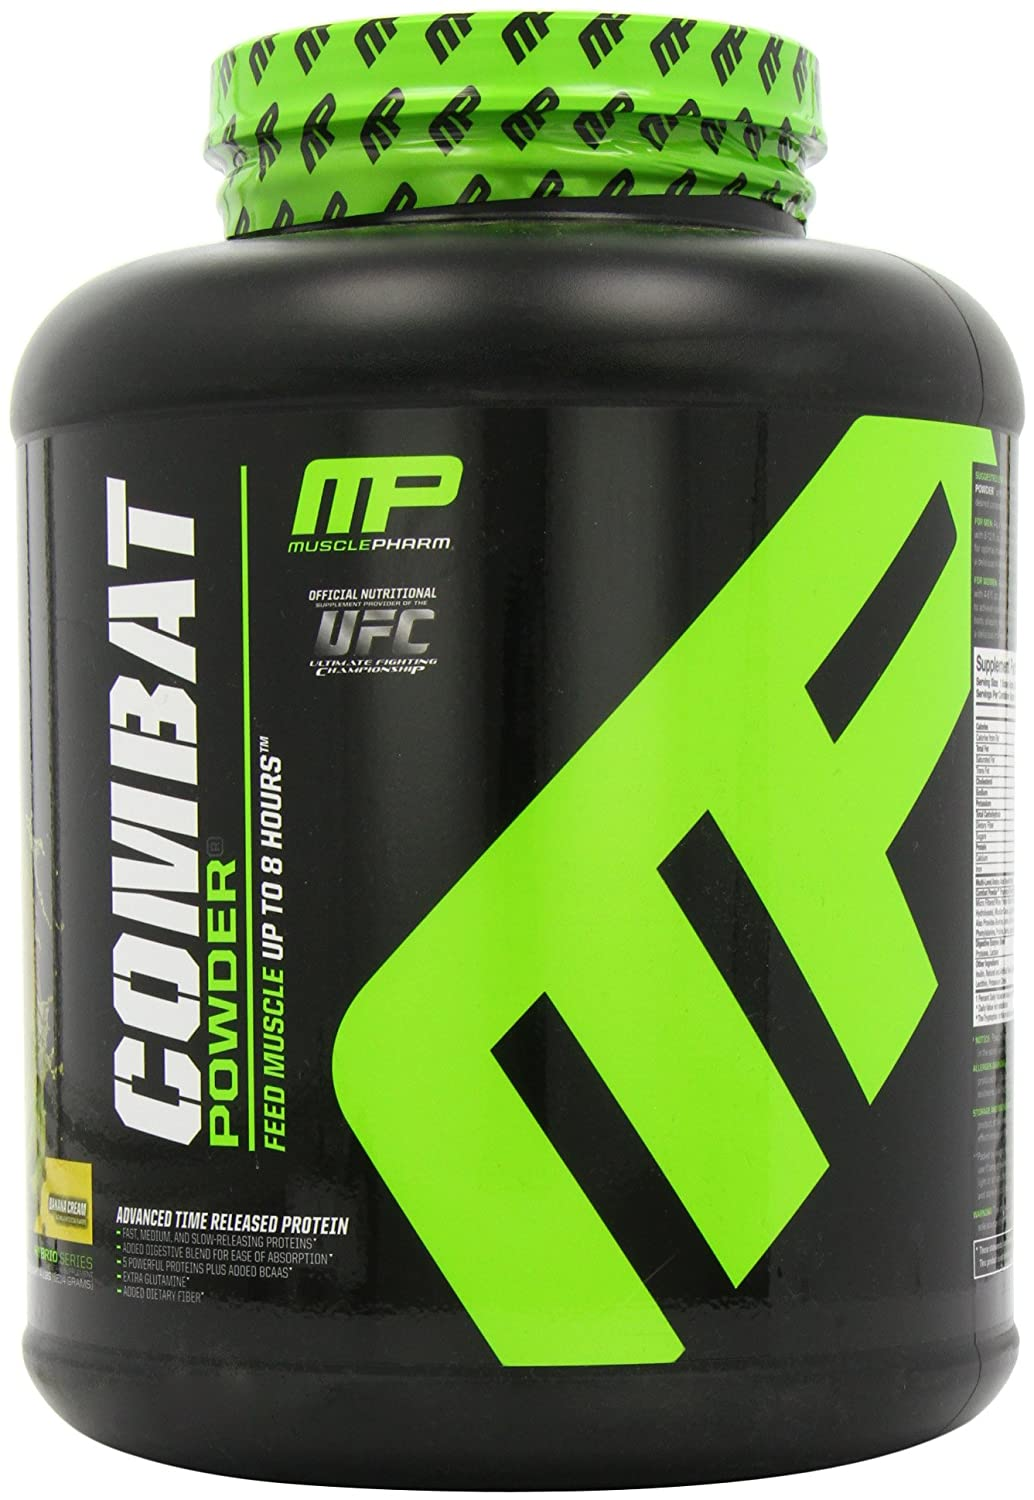 10 Best Protein Powders for Building Muscle 2020 Supplement Stadium